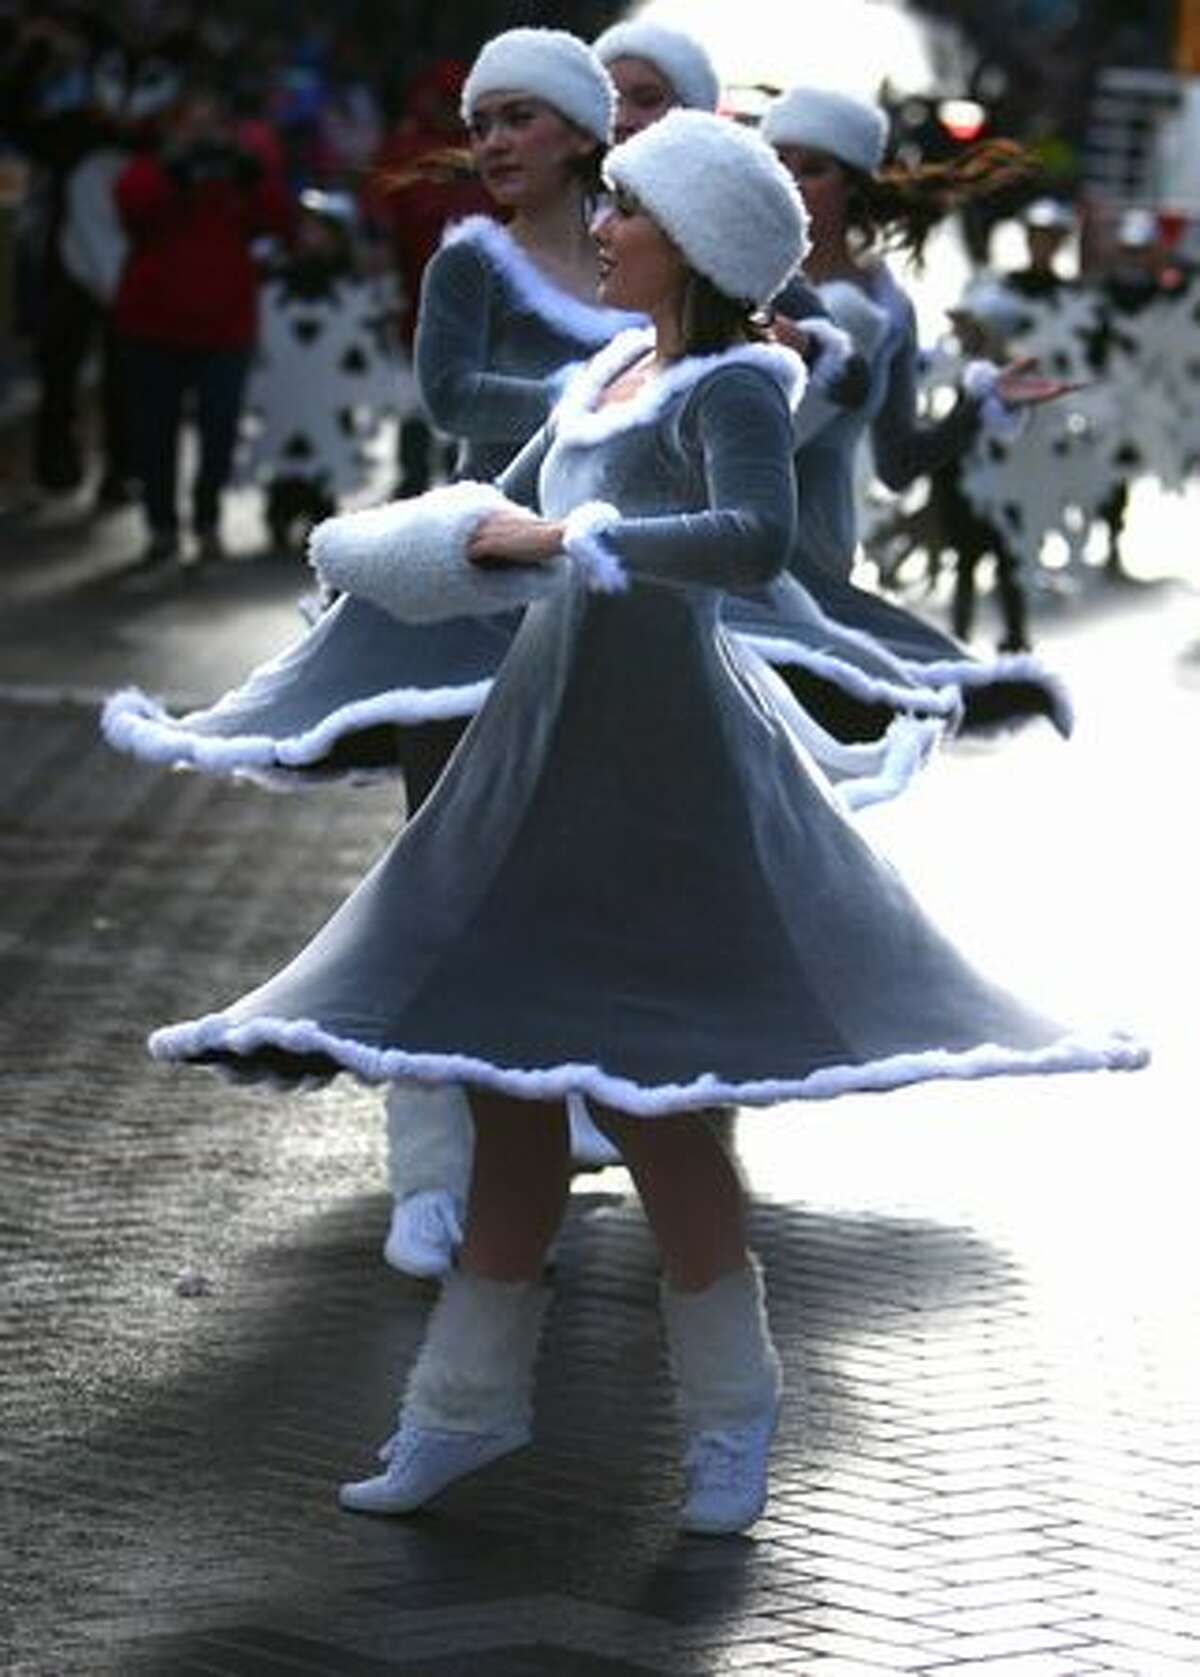 Dancers twirl during the Macy's Holiday Parade in downtown Seattle on Friday. Thousands came out for the annual event early Friday morning.